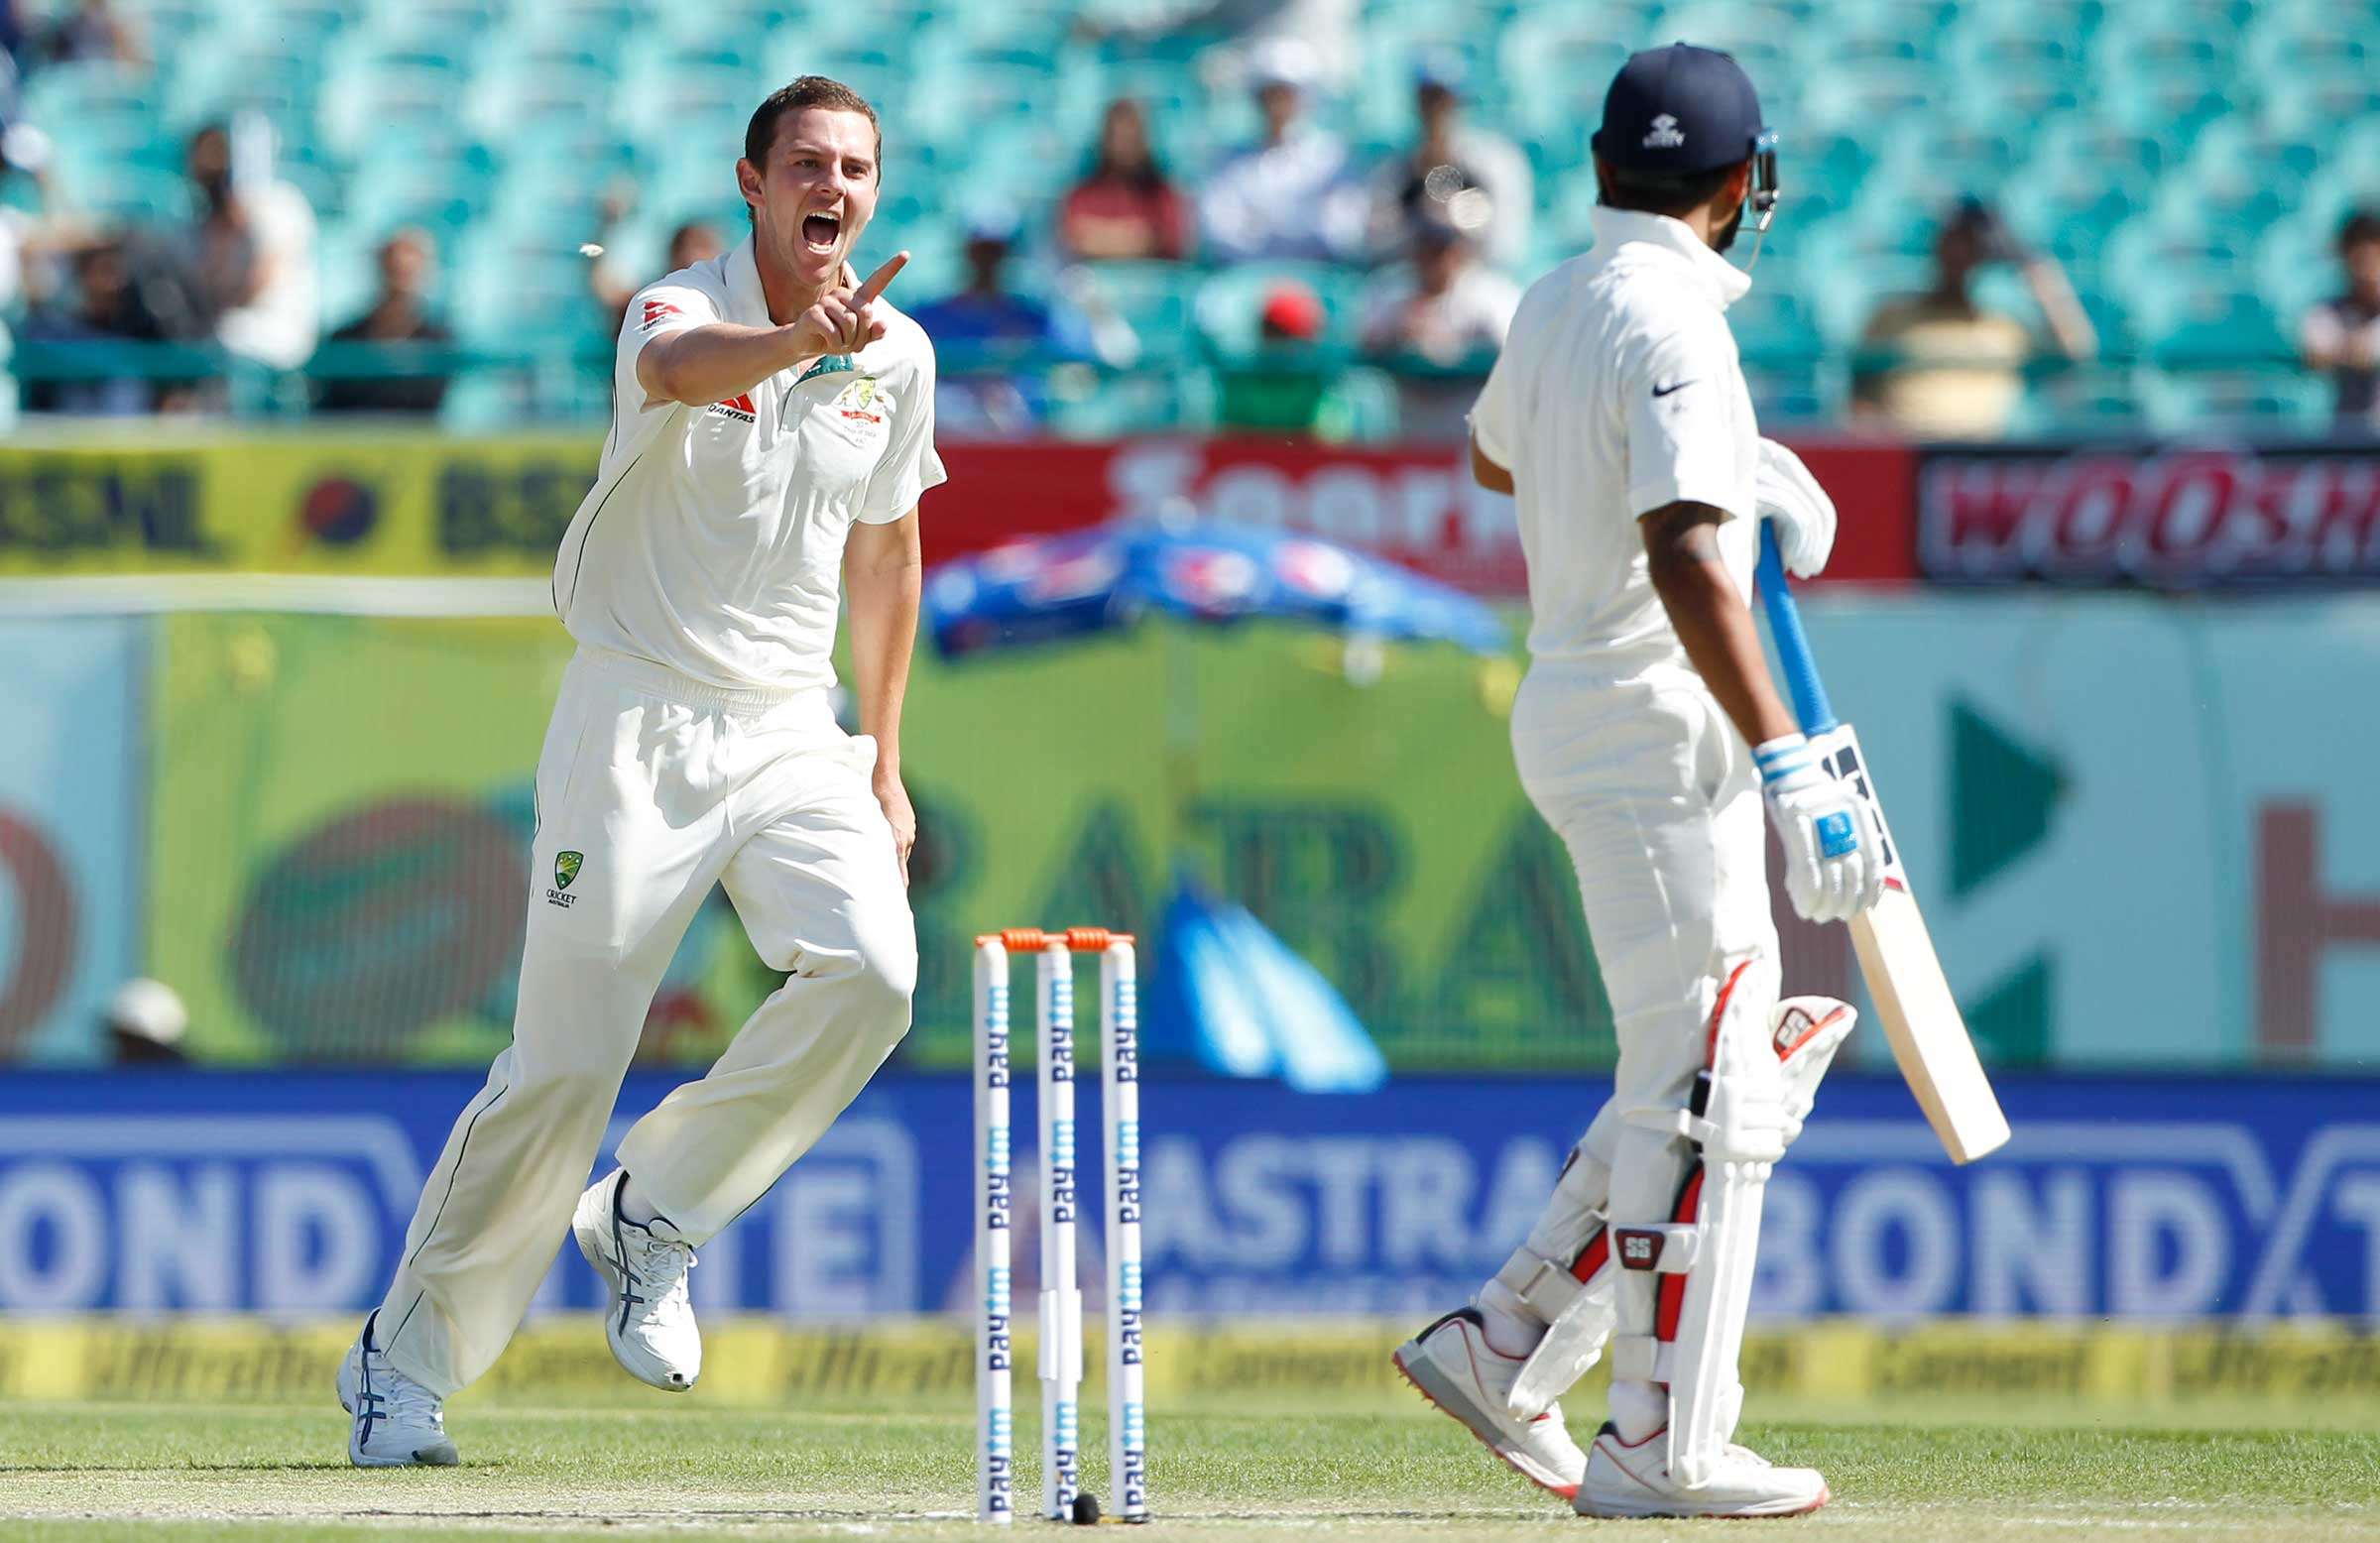 Hazlewood celebrates the wicket of Vijay // BCCI